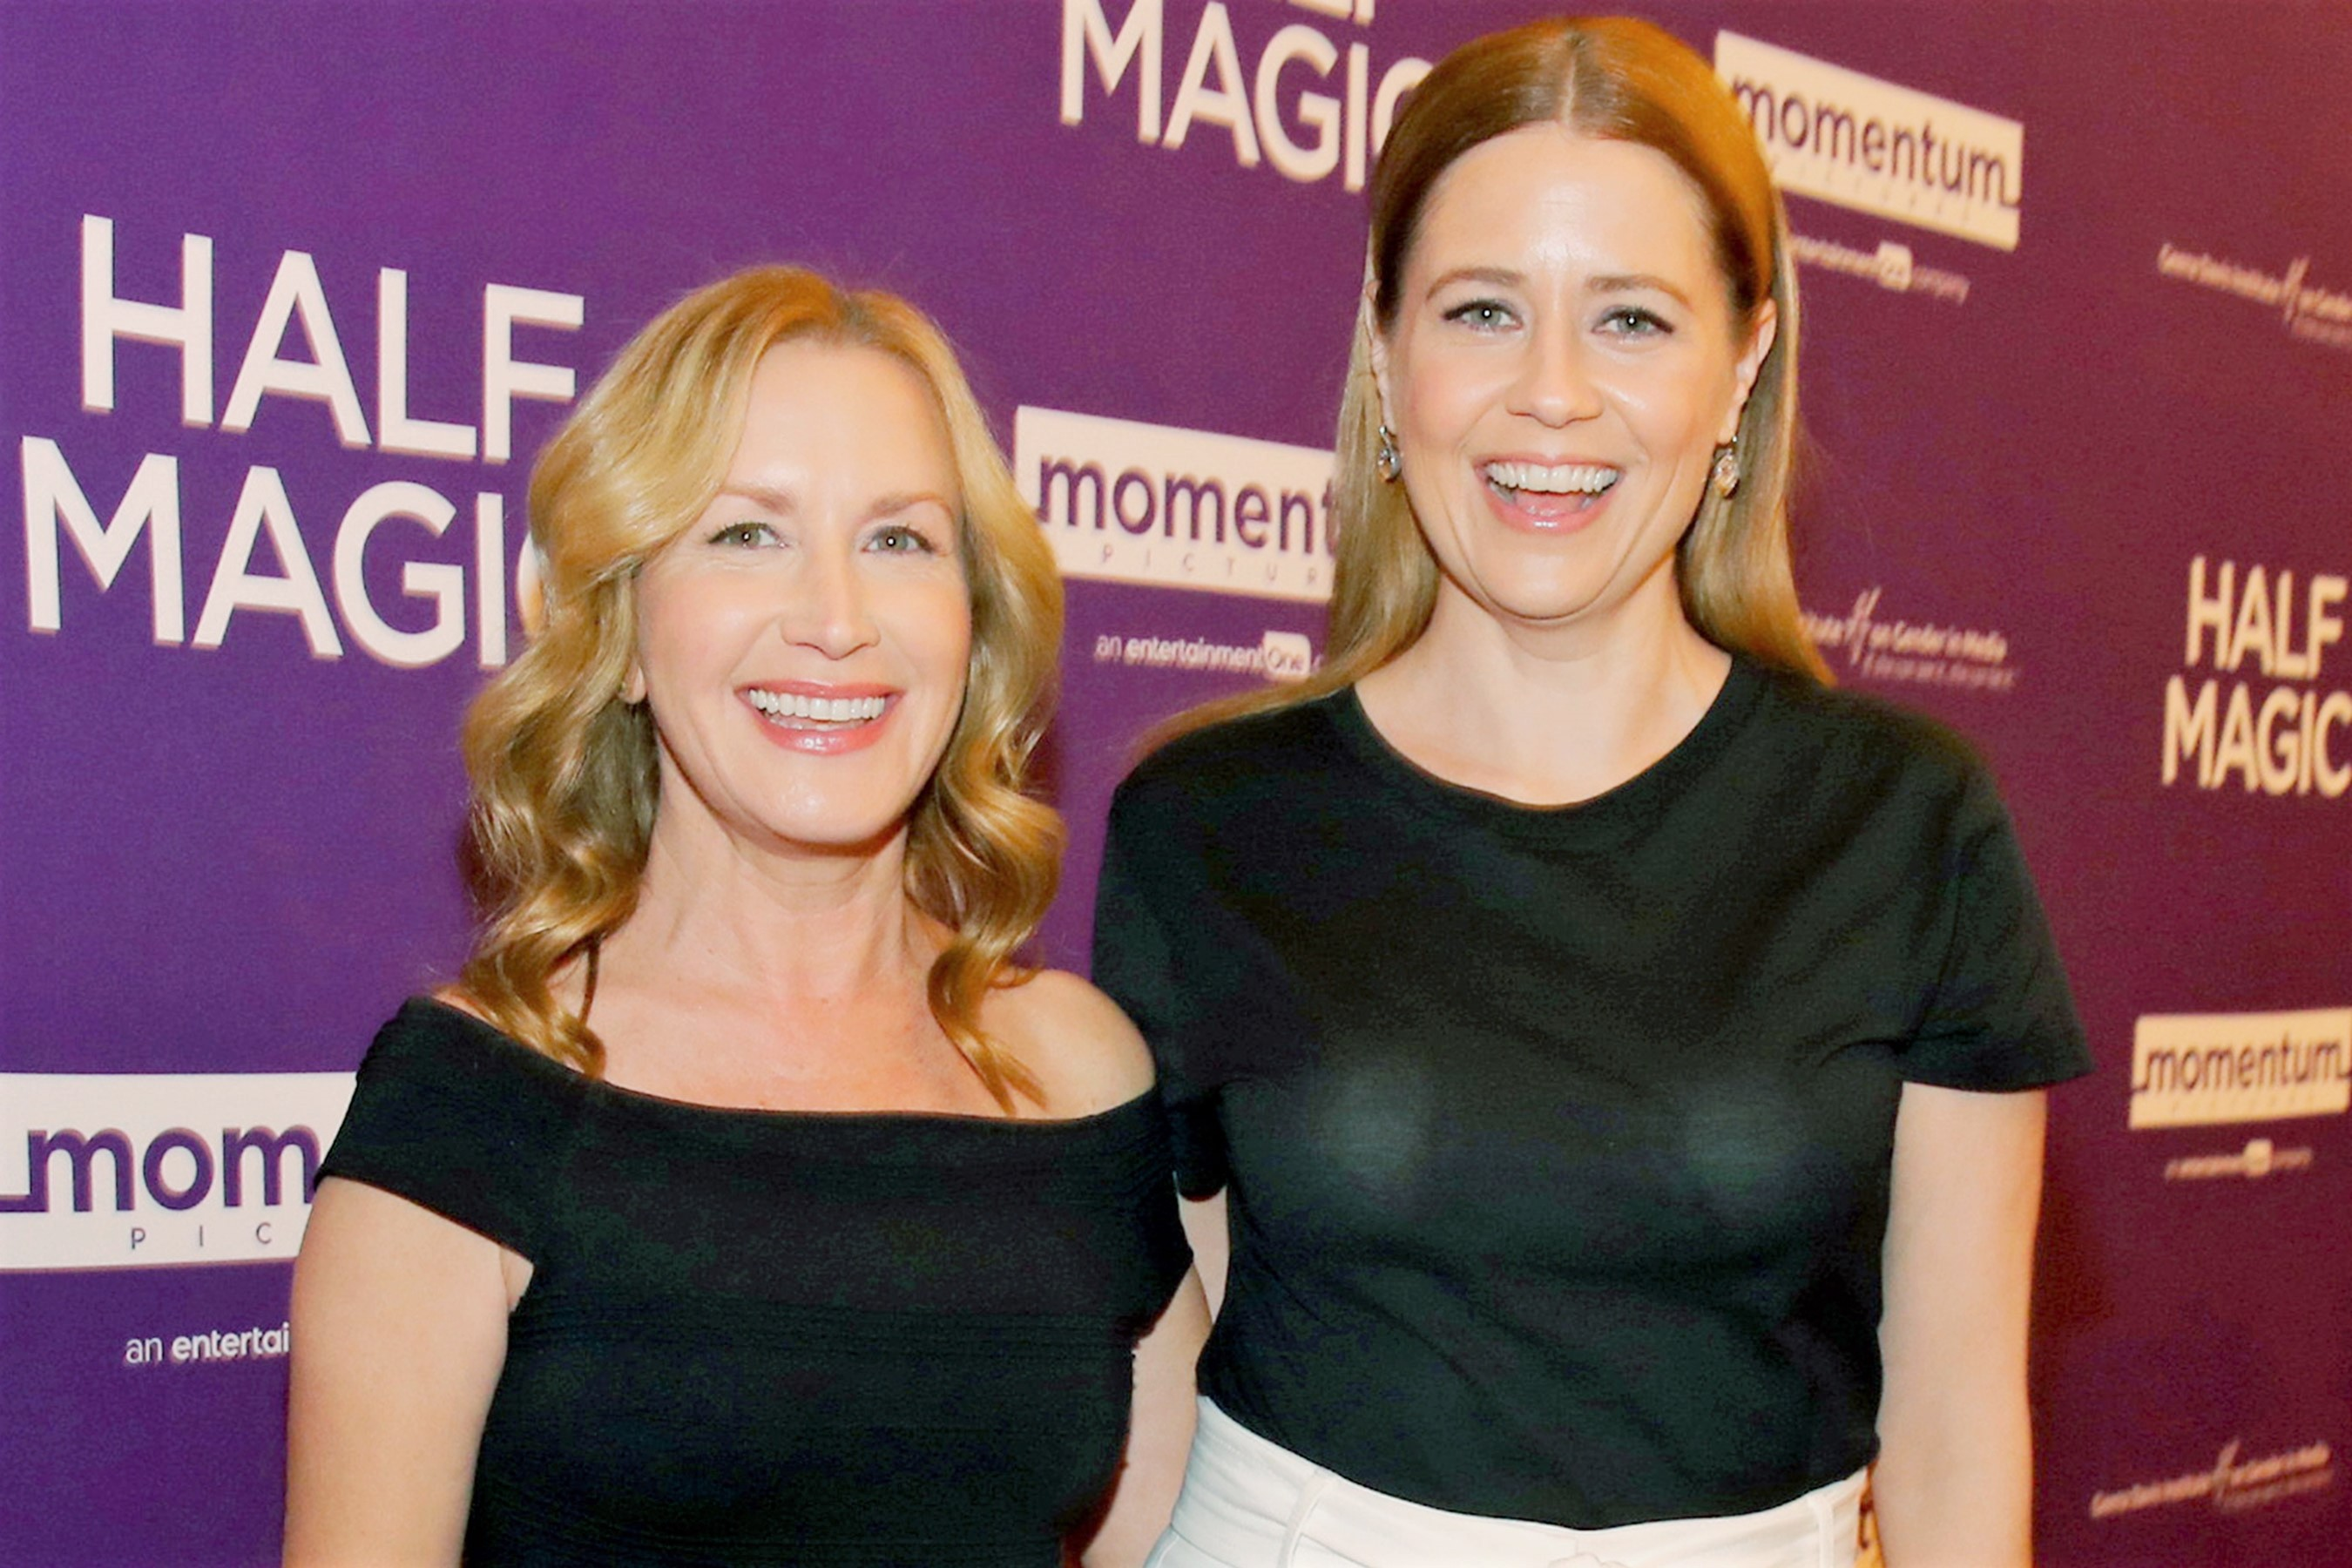 Angela Kinsey and Jenna Fischer at the premiere of Momentum Pictures Half Magic